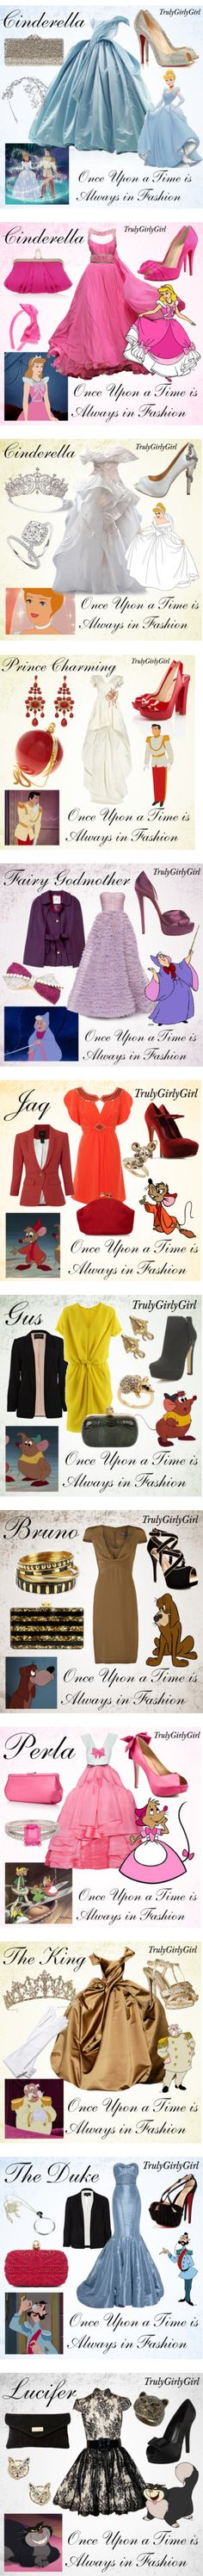 Disney Style: Cinderella by trulygirlygirl on Polyvore featuring Christian Louboutin, Rodo, Louis Mariette, RoomMates Decor, disney, cinderella, Disney, L. Erickson, Cartier and Christian Dior